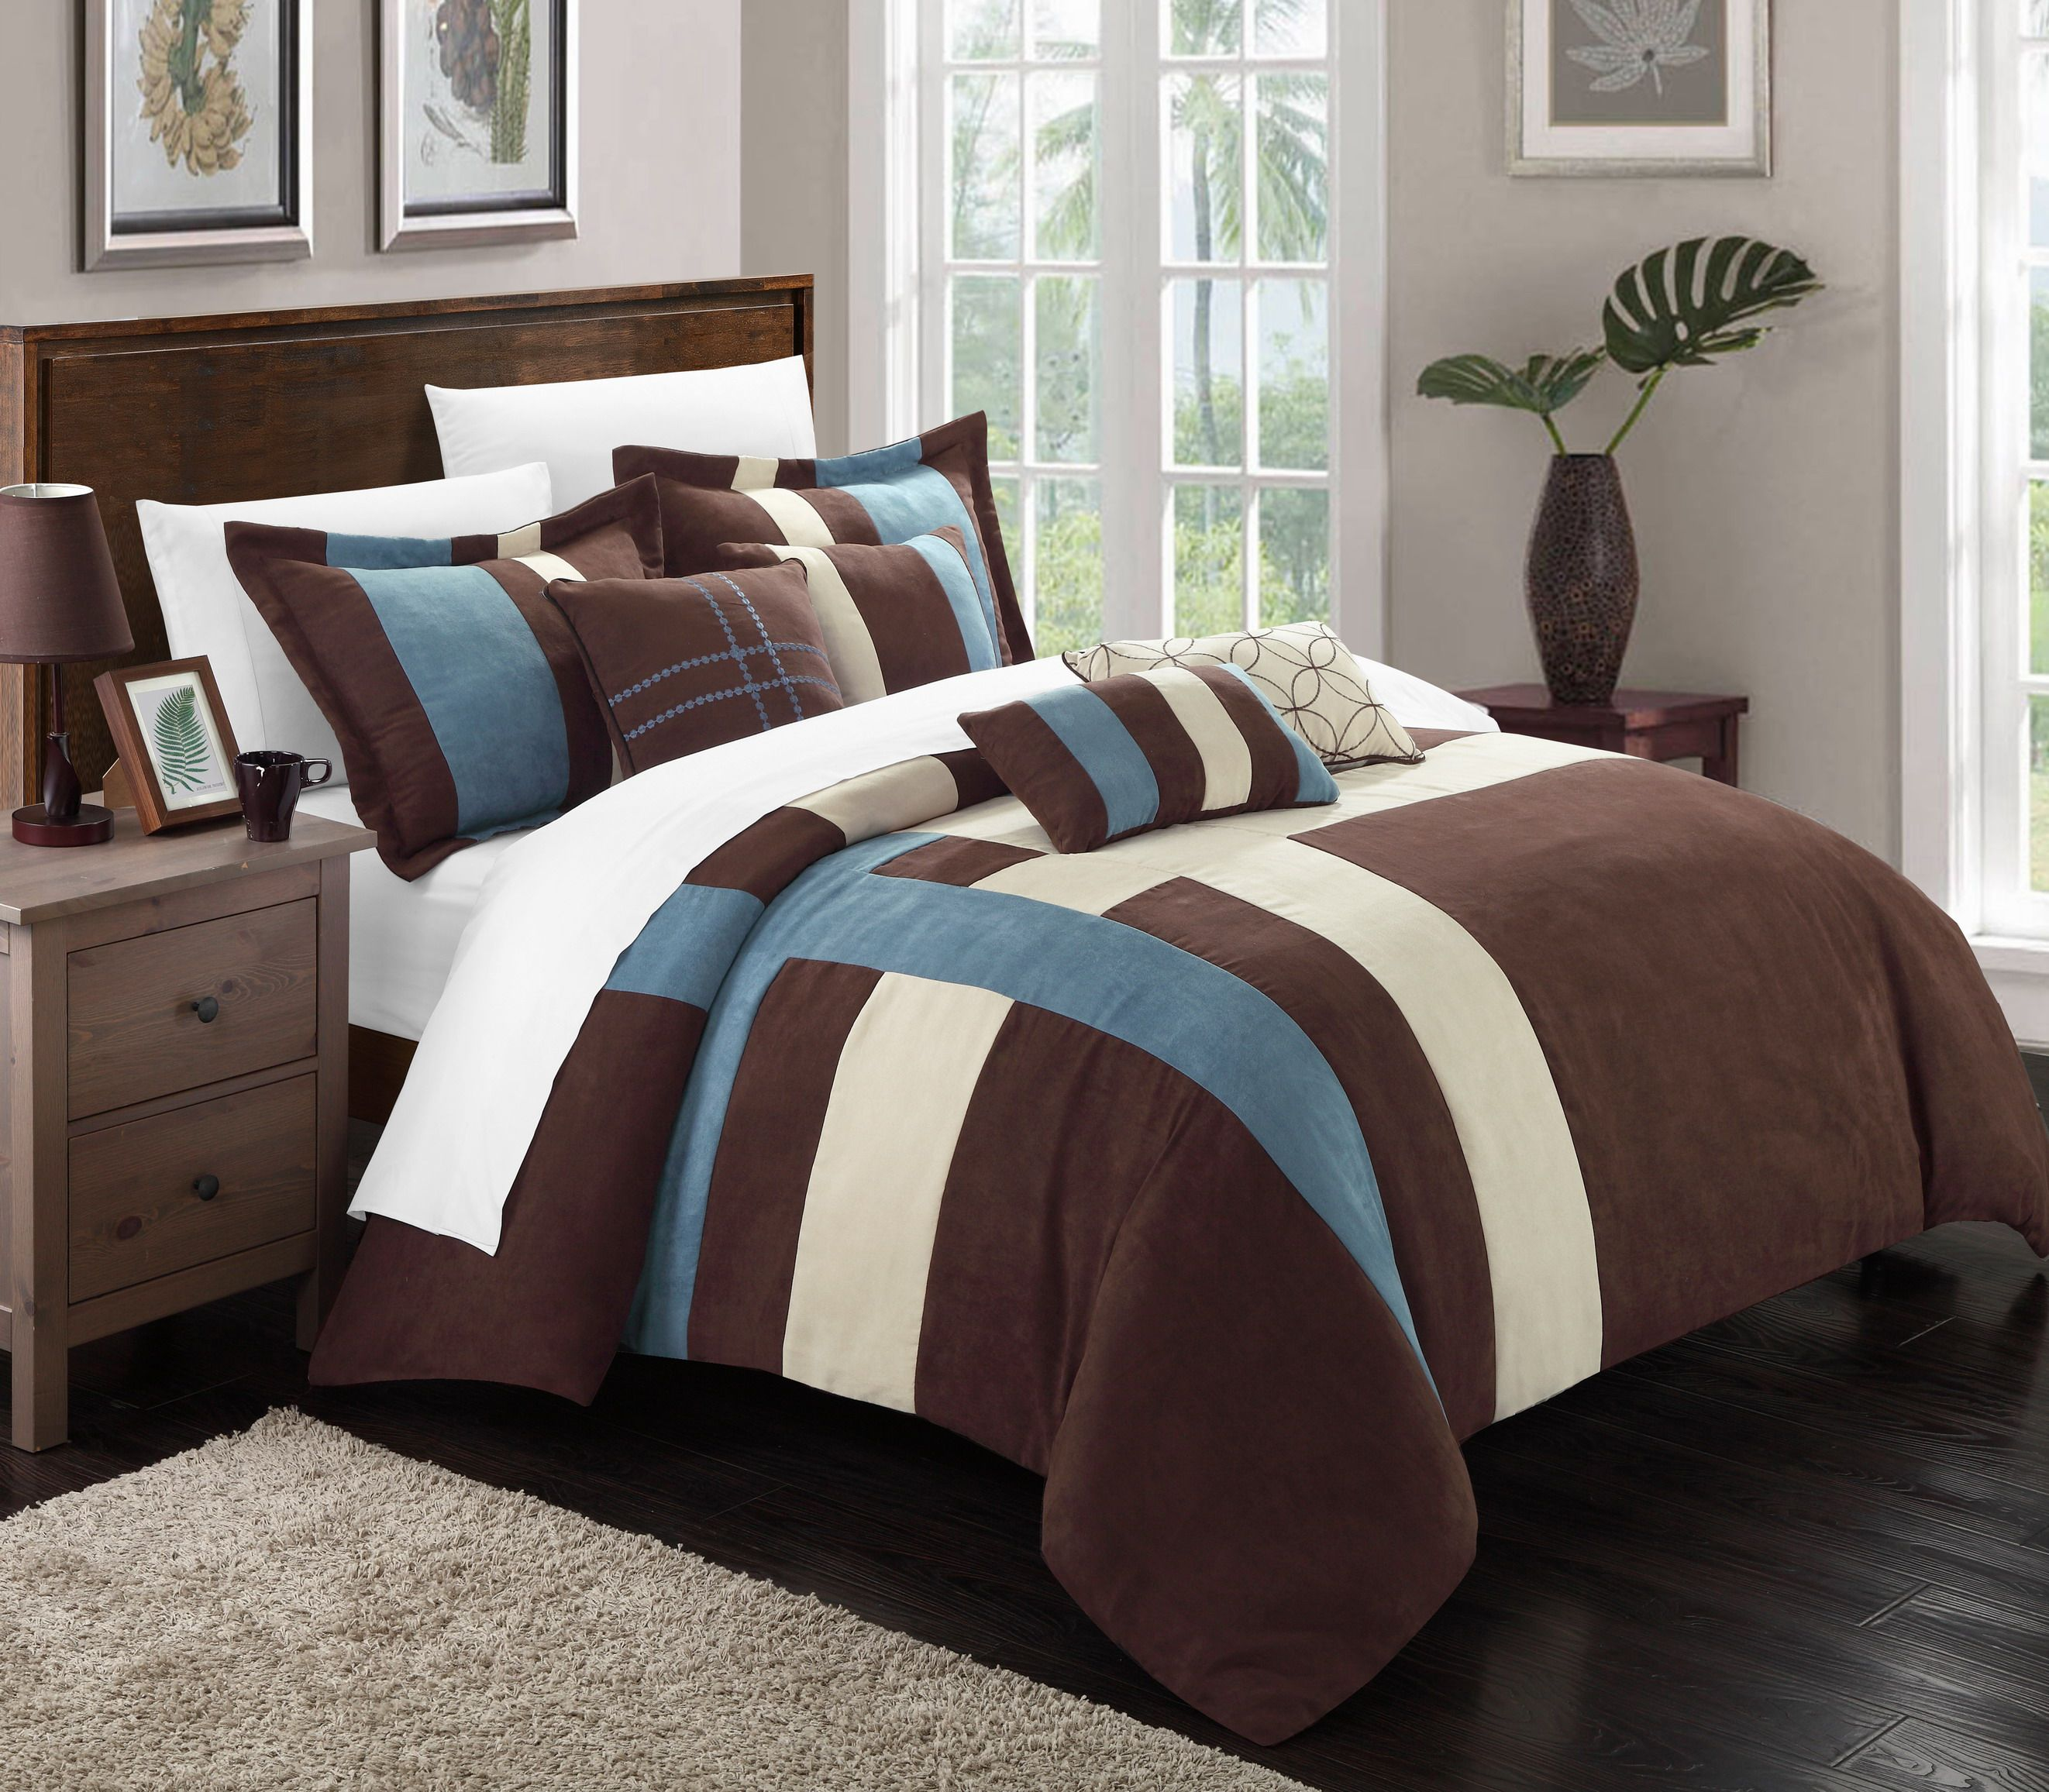 Chic Home Regina 7 Piece Plush Microsuede Comforter Set Includes Bed In A Bag 2 Sham And Master Bedroom Comforter Sets Comforter Sets Bedroom Comforter Sets Blue and brown queen comforter sets